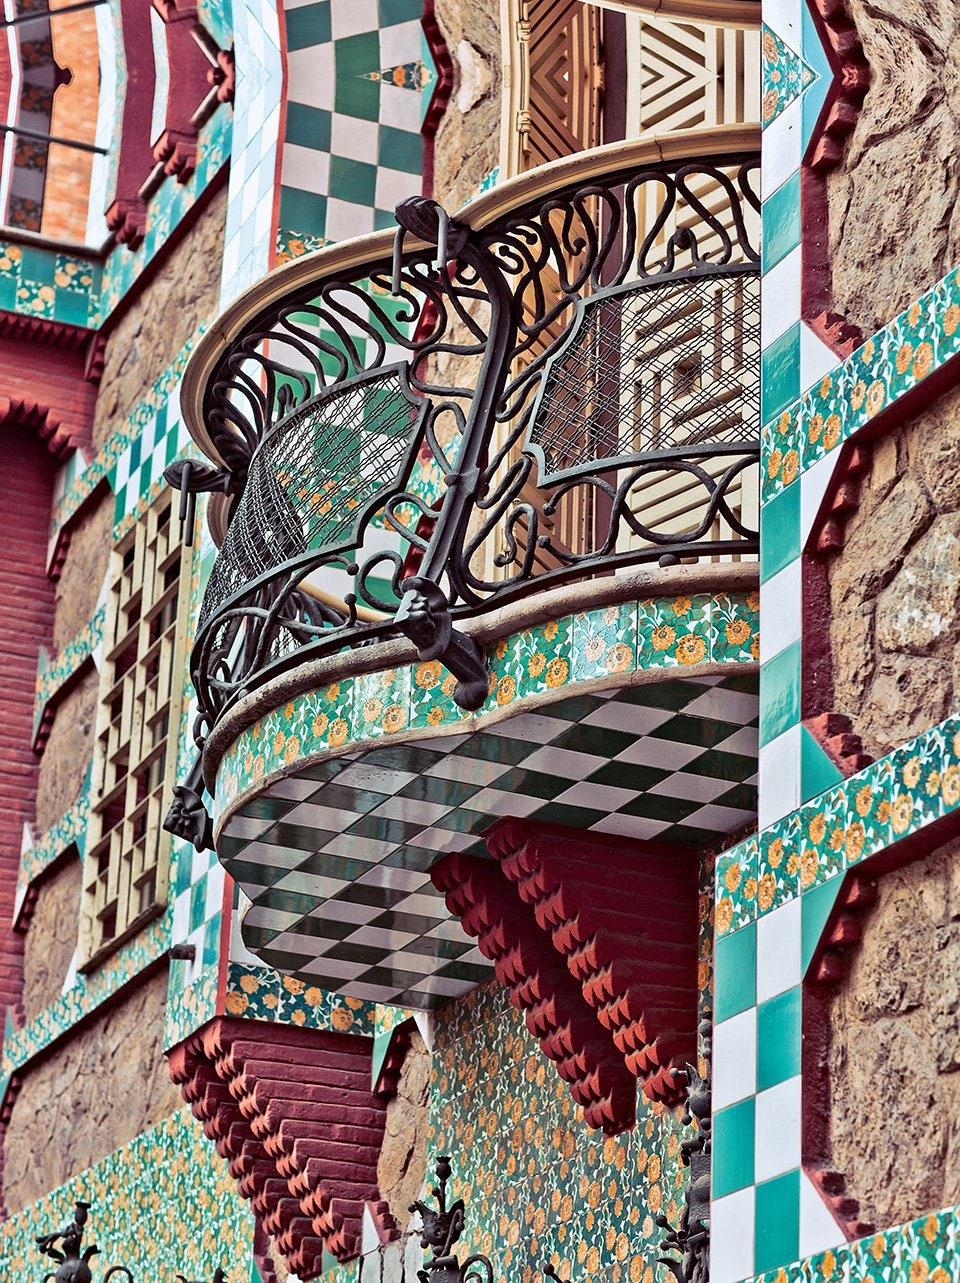 An earlier project constructed between 1878 and 1888, Casa Vicens in Barcelona has wrought-iron balconies that display similarities to many Art Nouveau structures. But its colorful mosaic-clad façade is definitively Gaudí.